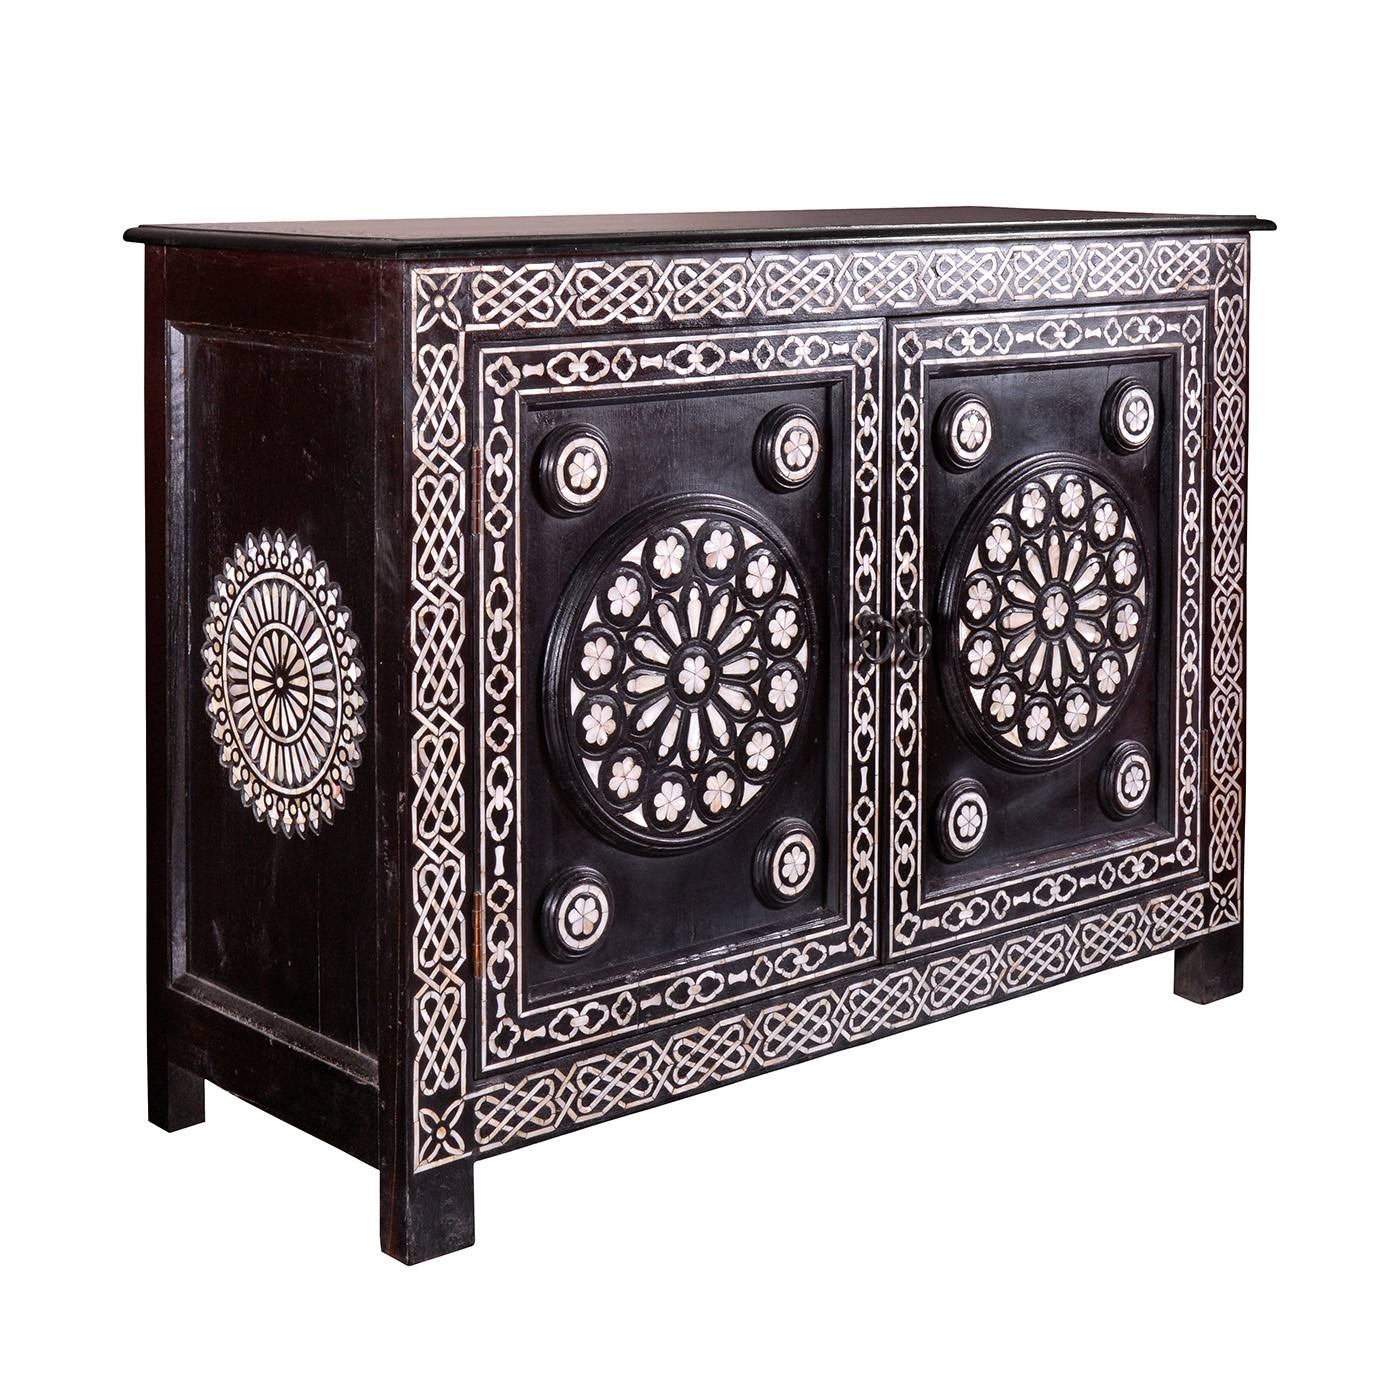 Gothic Pearl Inlay Sideboard: Mother Of Pearl Inlay Sideboard Buffett intended for Metal Sideboards (Image 13 of 30)